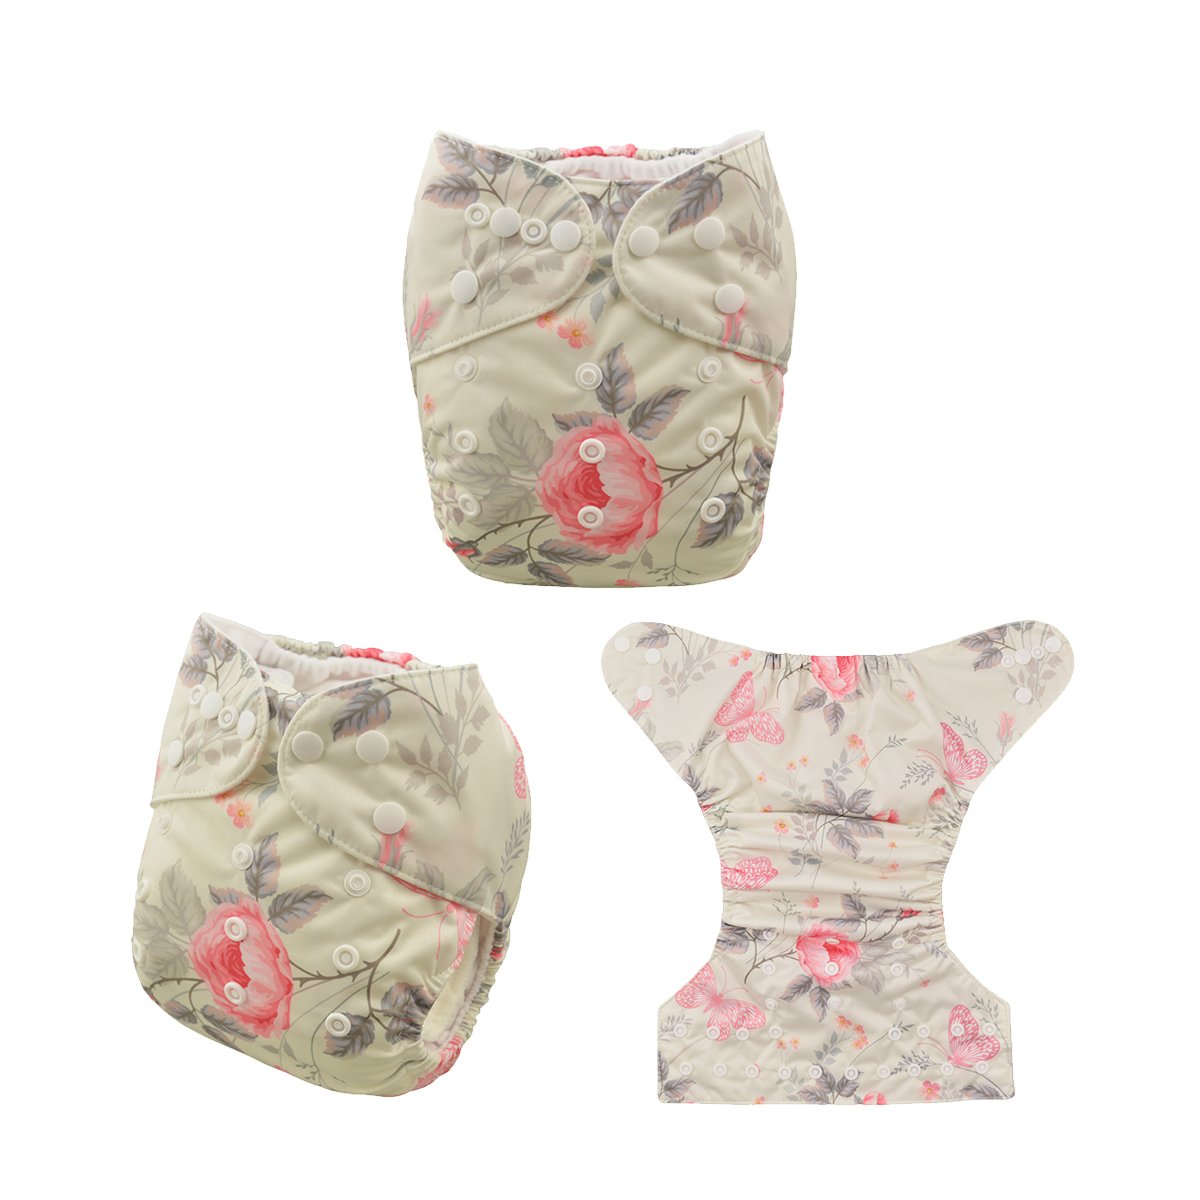 ALVABABY Cloth Diaper Pocket Washable Adjustable Reuseable Baby Nappies 6PCS+12 Inserts 6DM20-CA